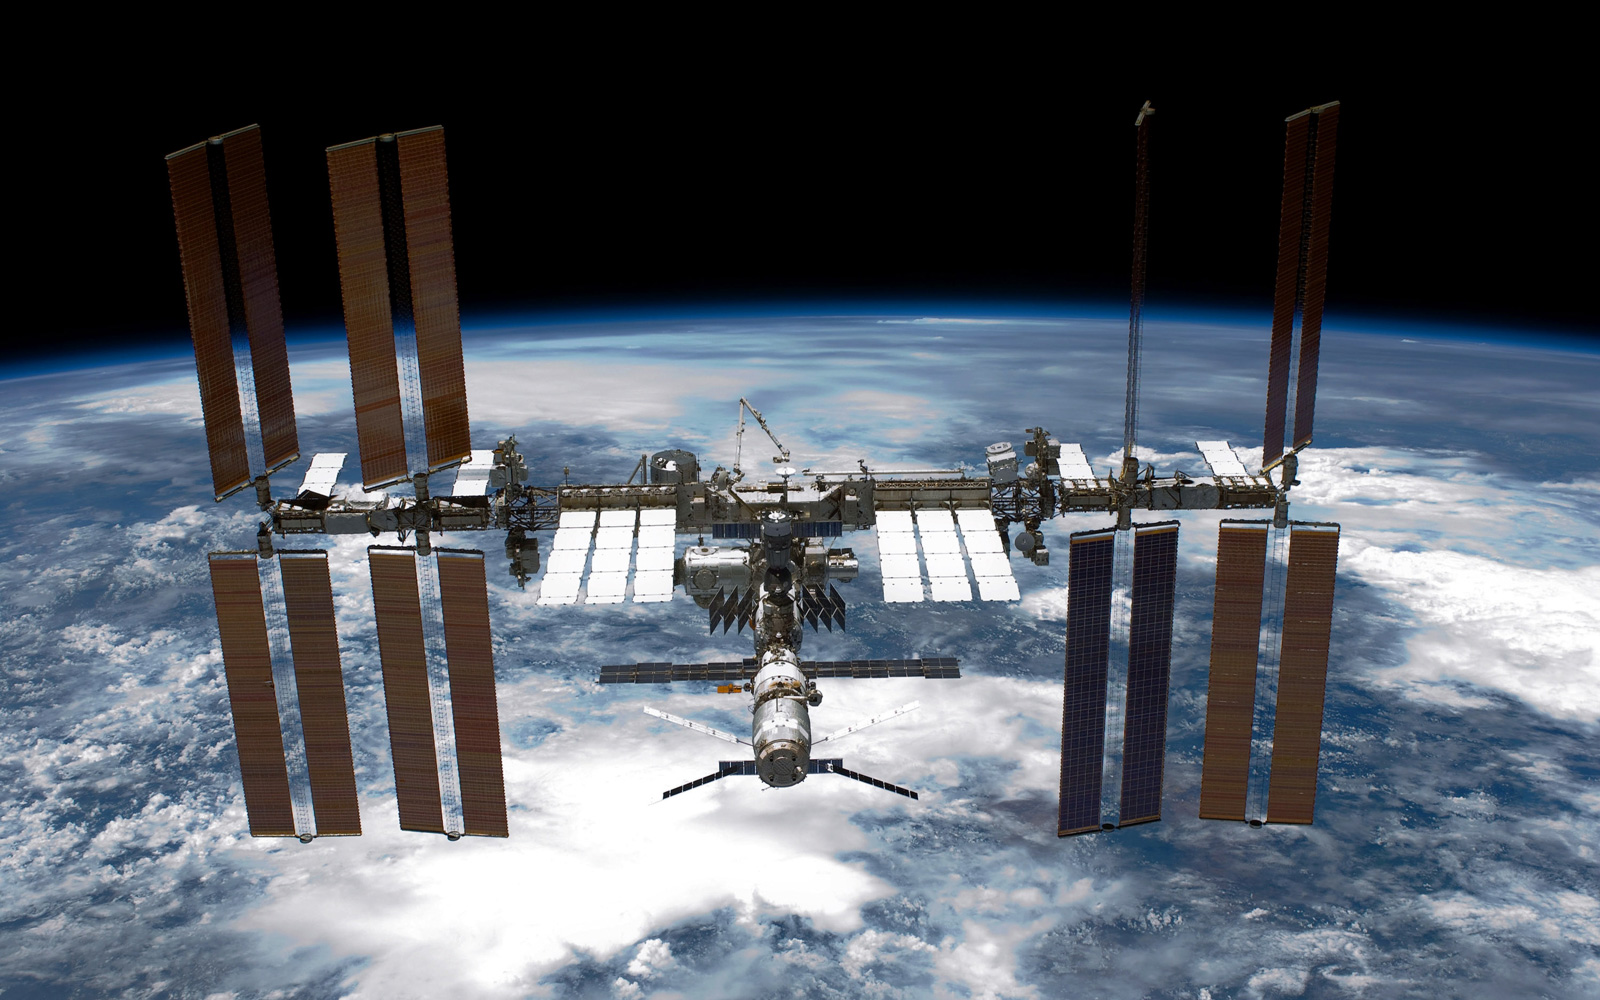 International Space Station (ISS) is seen from NASA space shuttle Endeavour